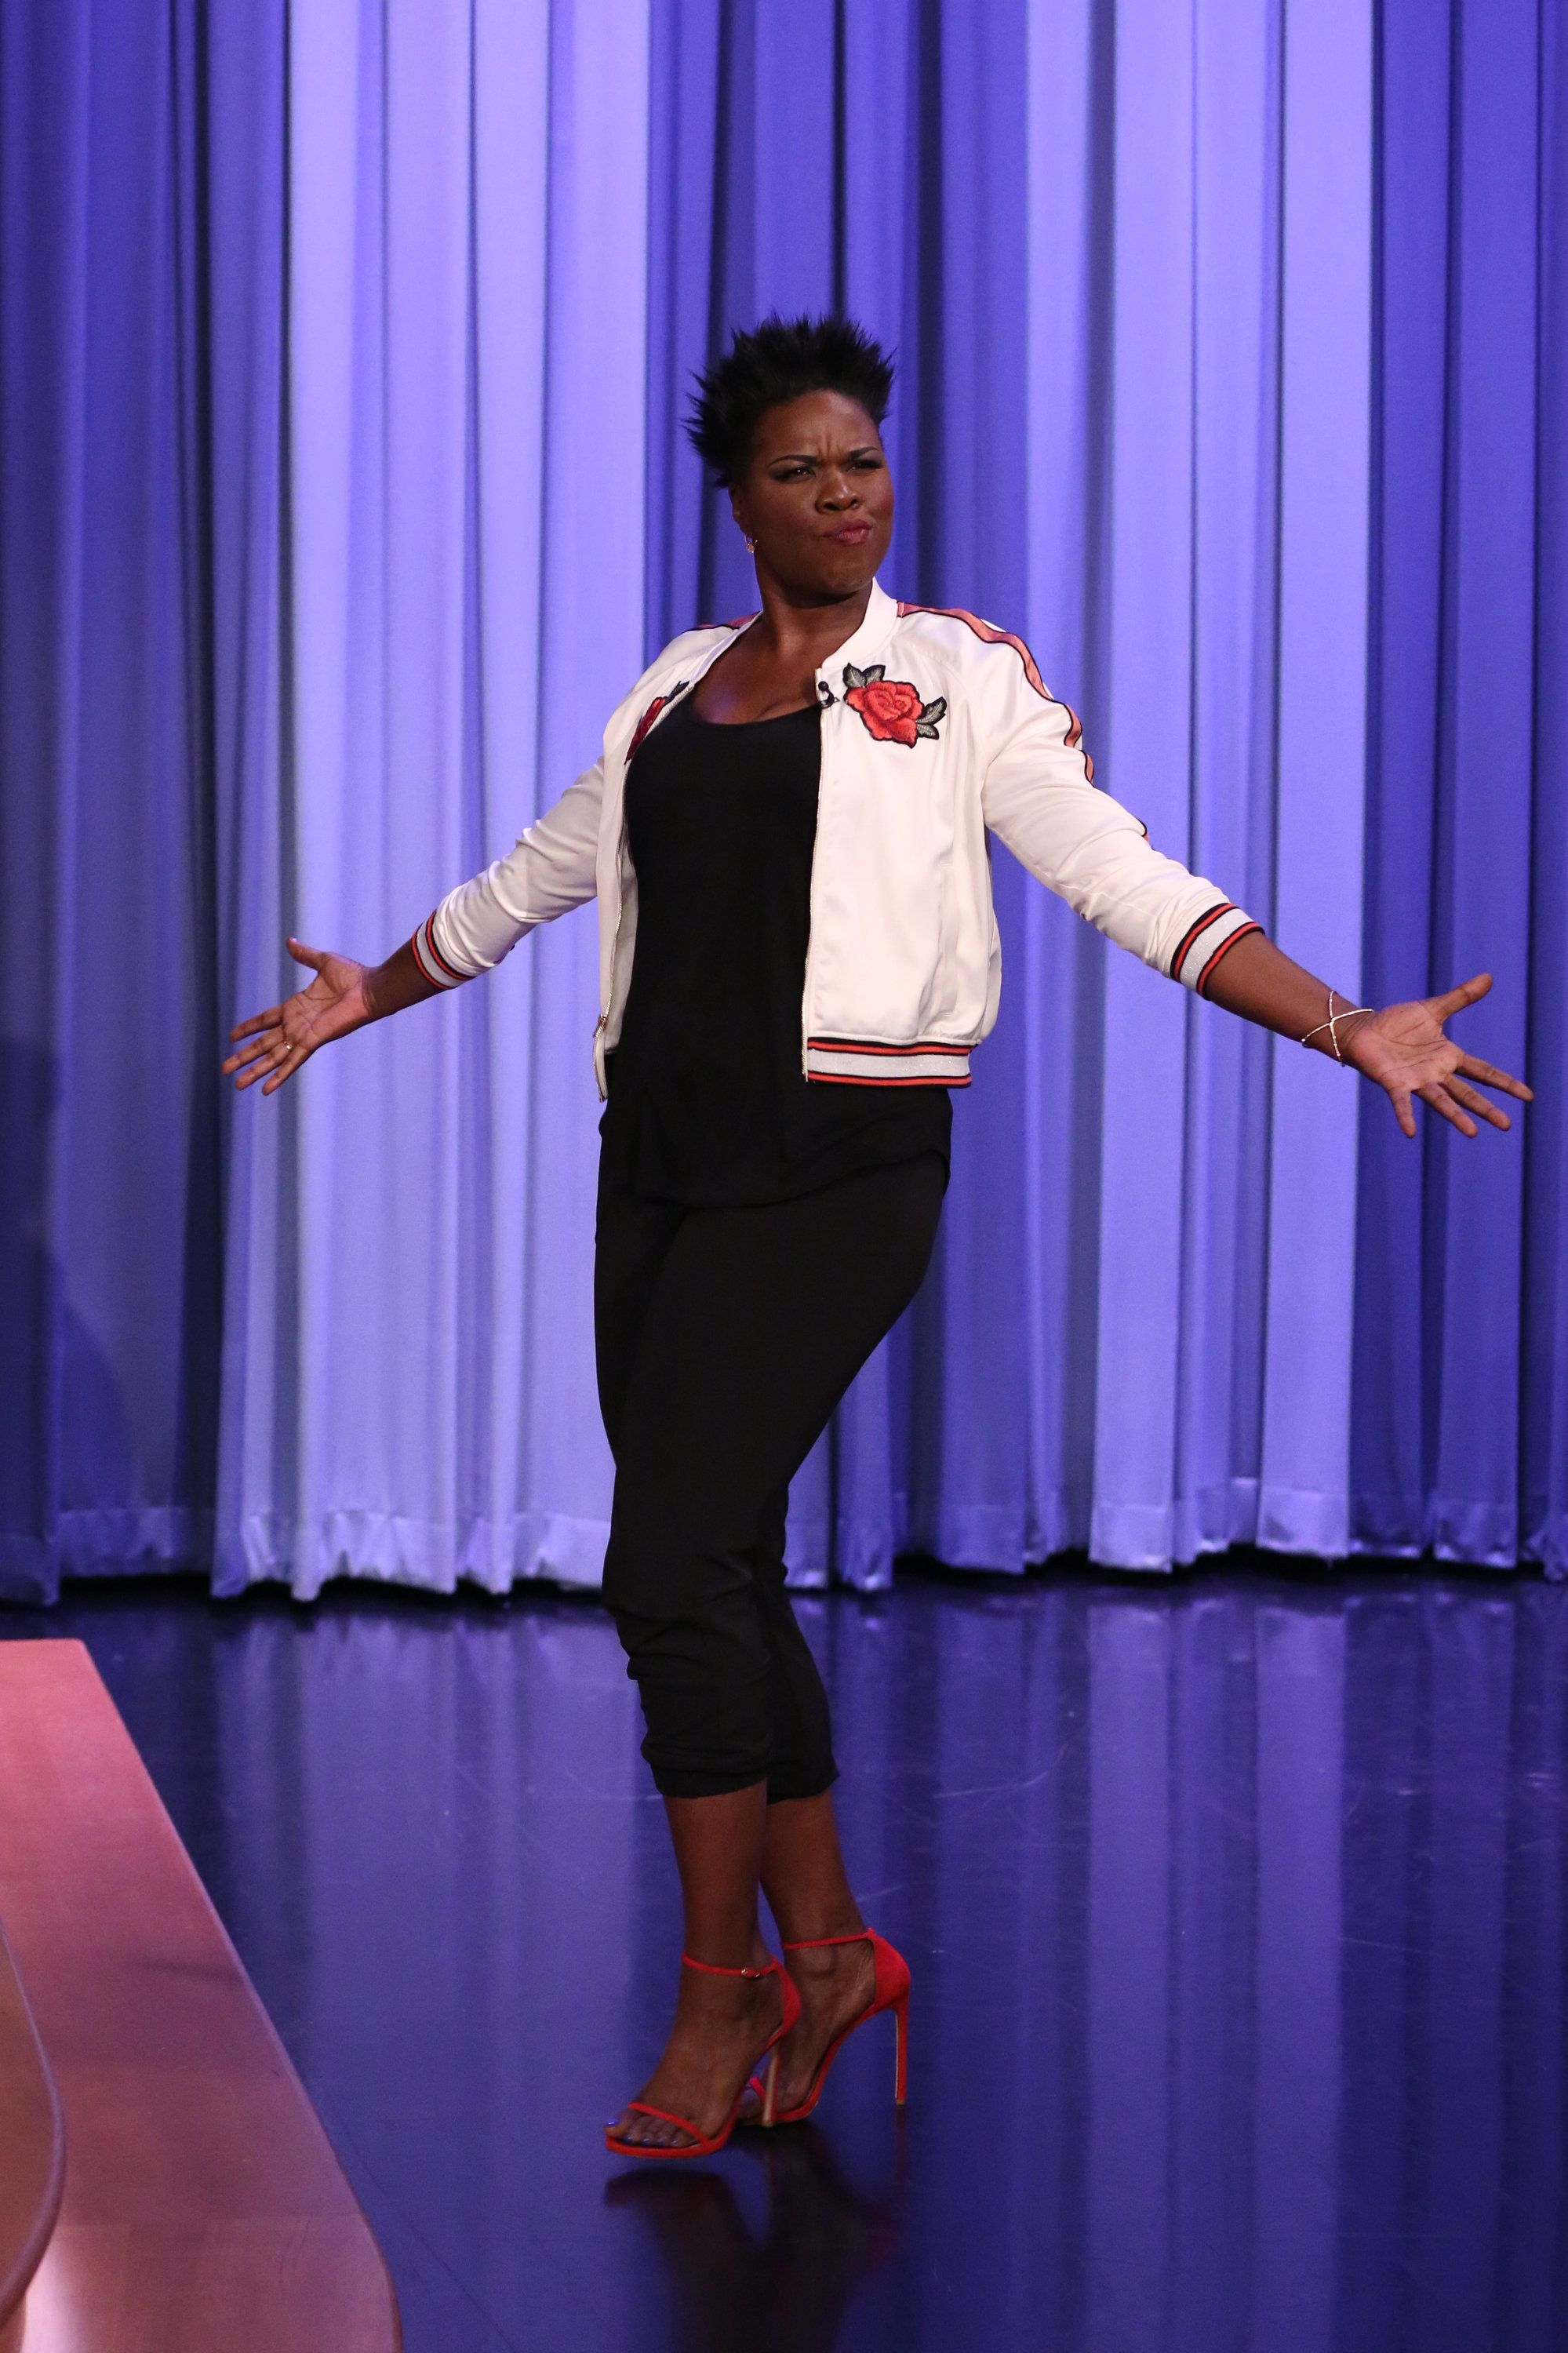 THE TONIGHT SHOW STARRING JIMMY FALLON -- Episode 0662 -- Pictured: Comedian Leslie Jones arrives for an interview on April 26, 2017 -- (Photo by: Andrew Lipovsky/NBC/NBCU Photo Bank via Getty Images)